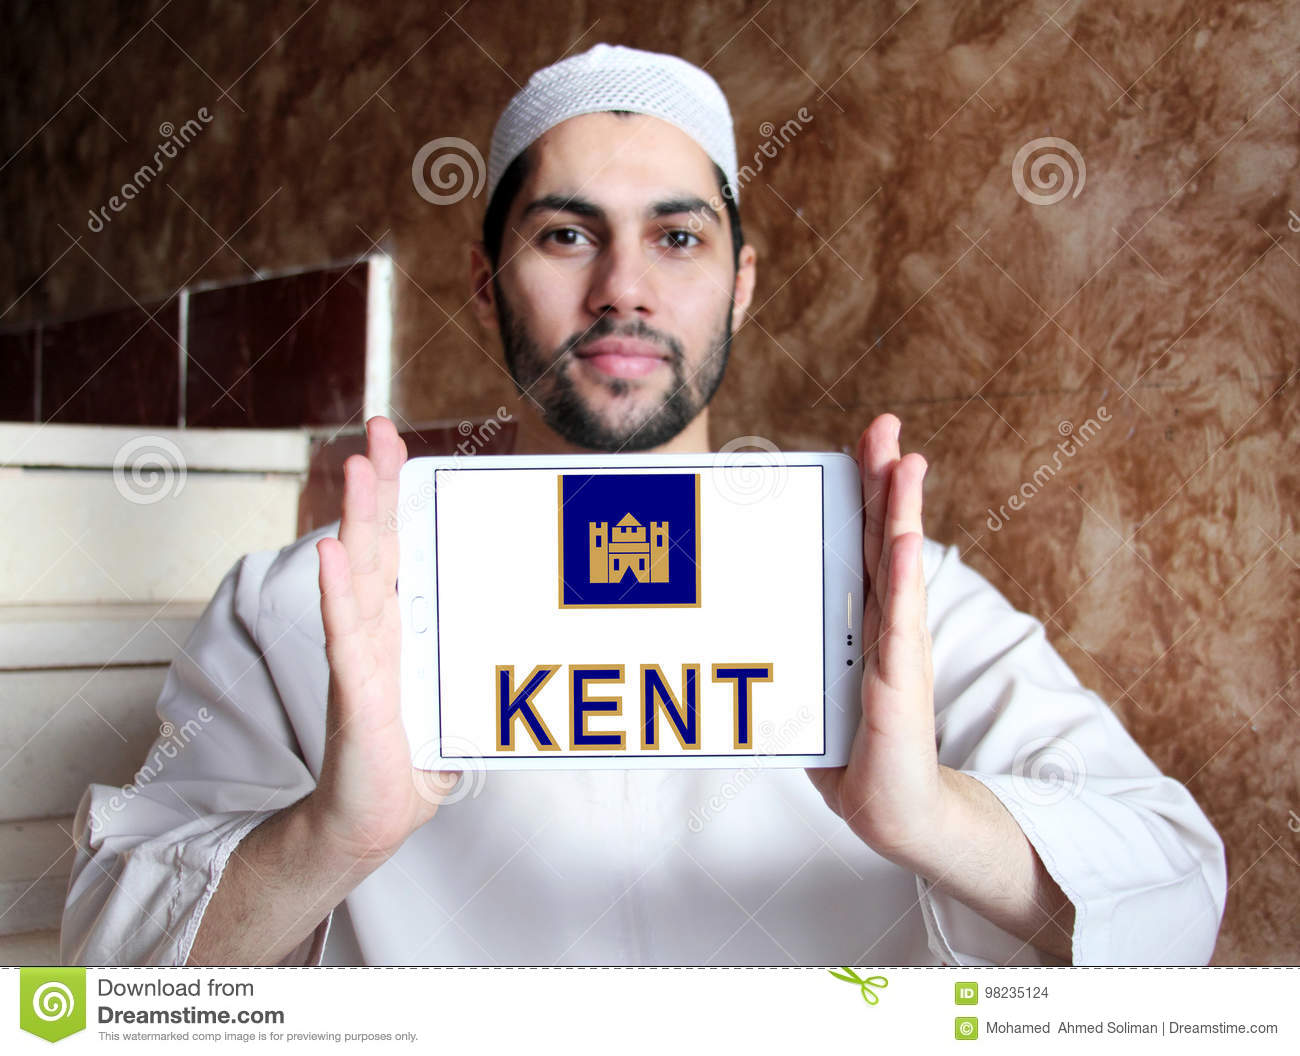 Kent Cigarettes Stock Images - Download 14 Royalty Free Photos